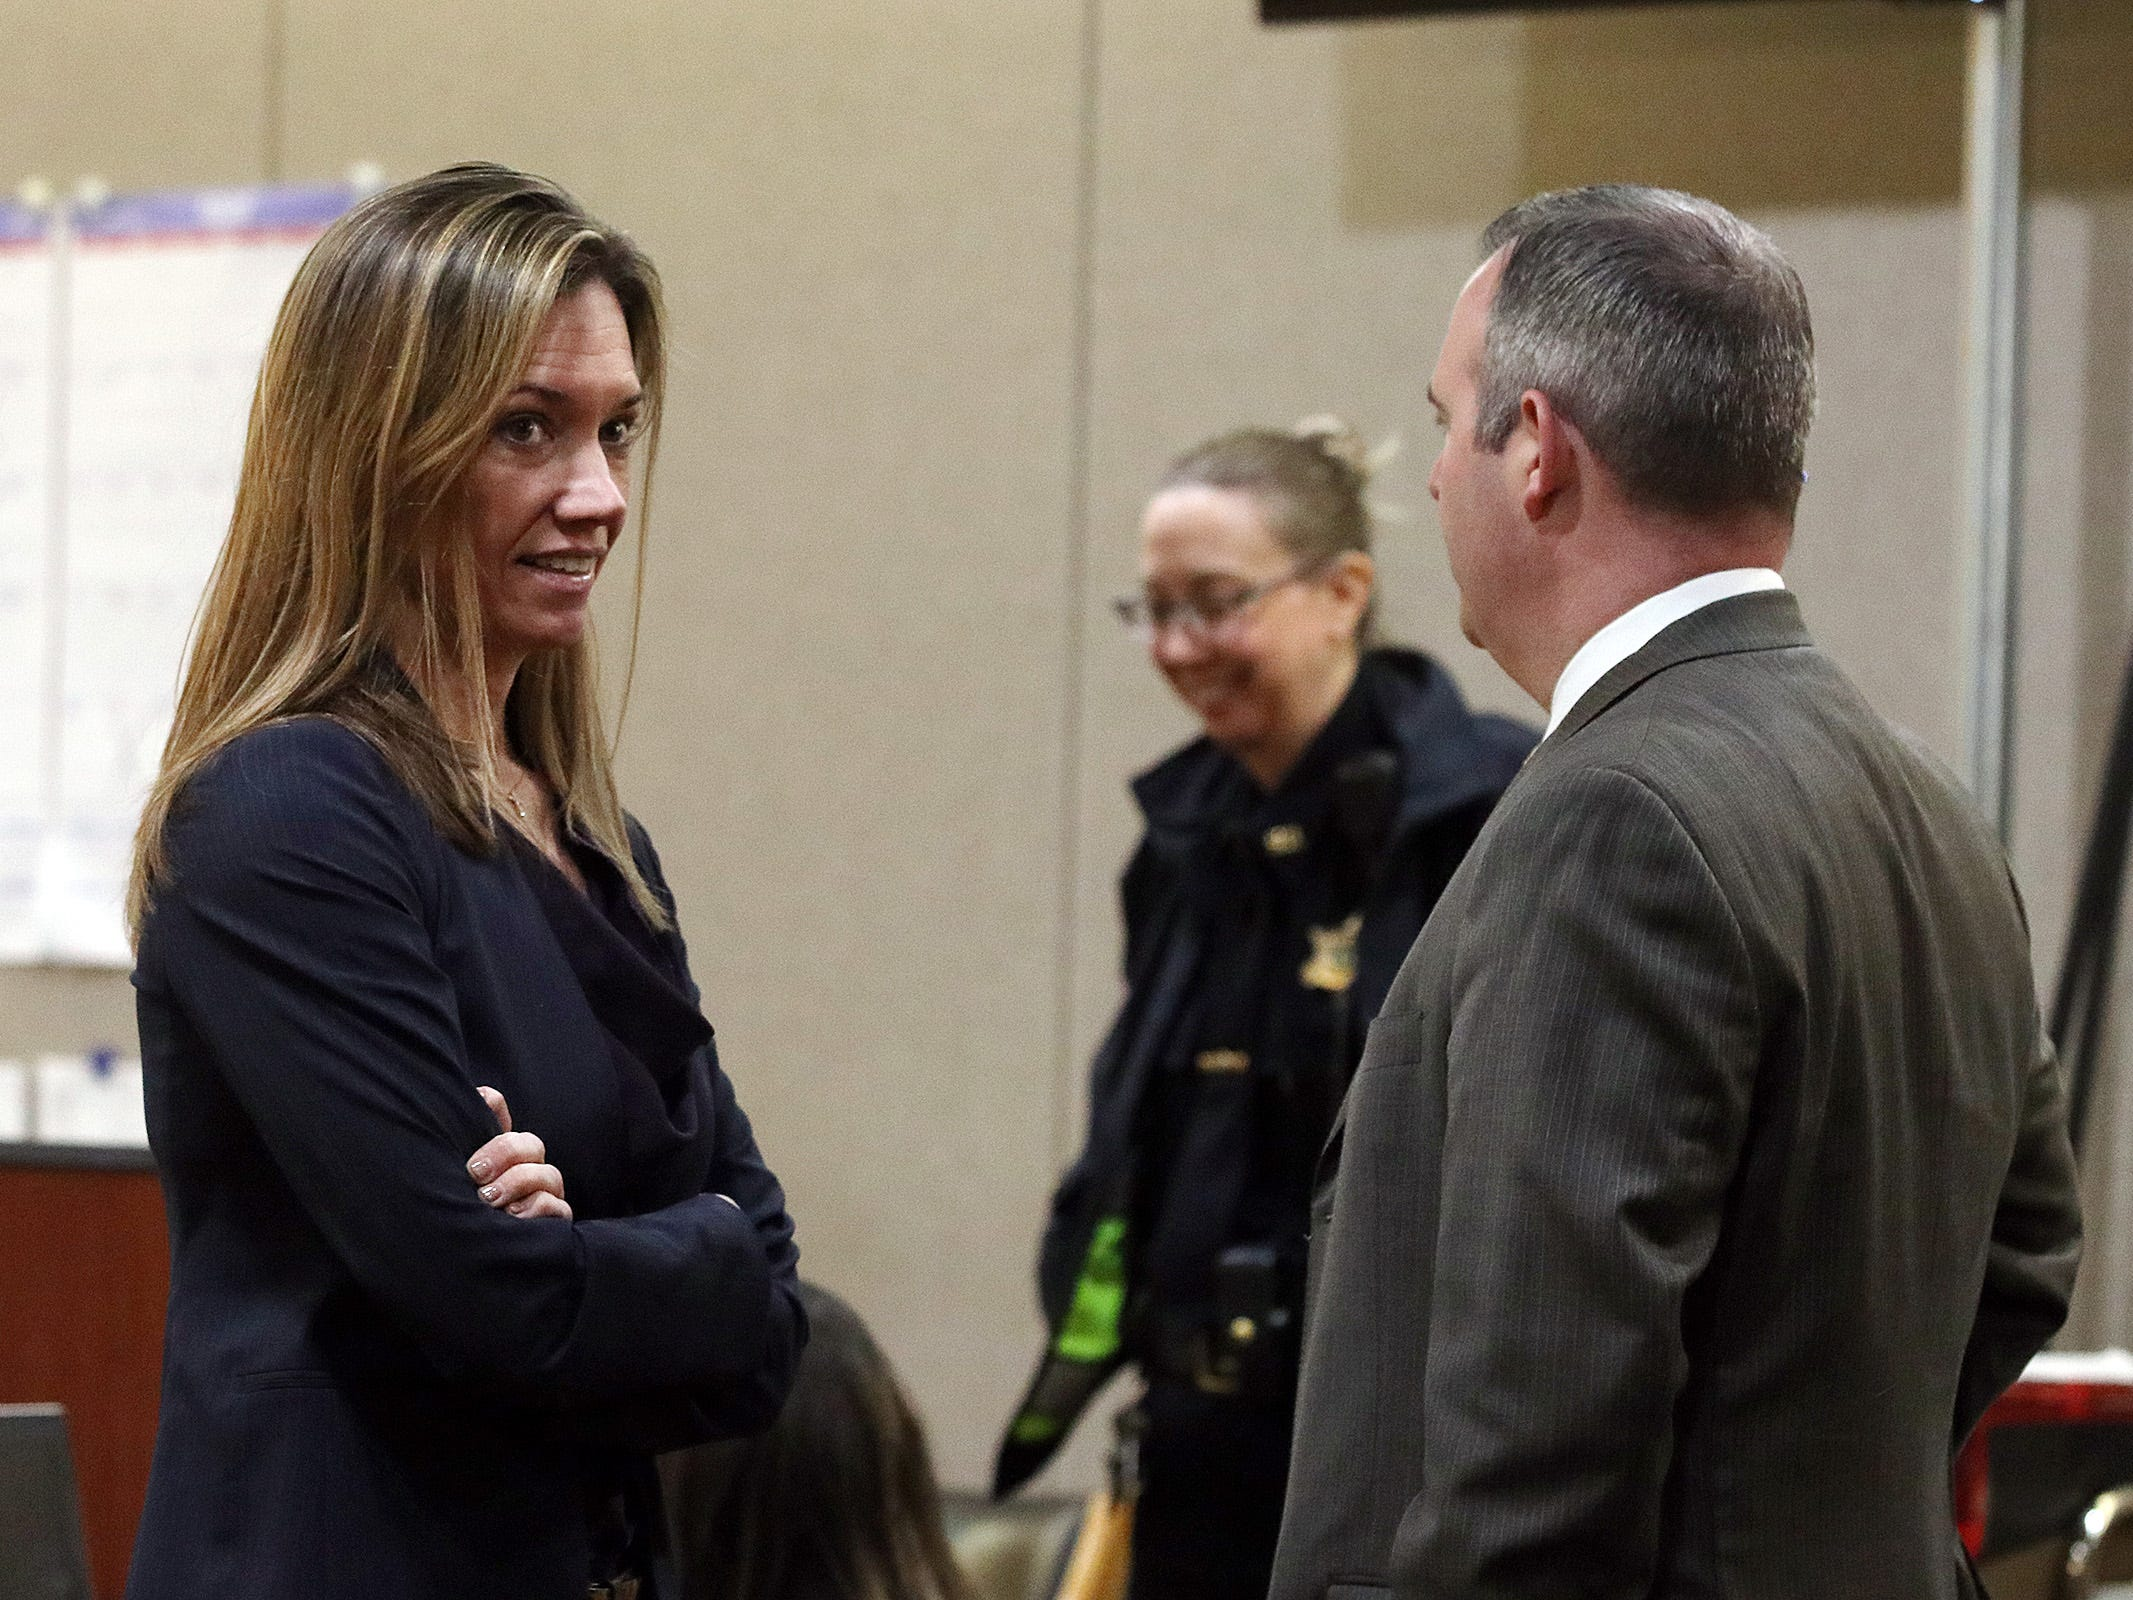 Monmouth County assistant prosecutors Meghan Doyle and Christopher Decker talk during a short recess in the trial of Liam McAtasney, who is charged with the murder of former high school classmate, Sarah Stern, before Superior Court Judge Richard W. English at the Monmouth County Courthouse in Freehold, NJ Wednesday, February 13, 2019. The jury was sent home for the day after Carlos Diaz-Cobo, the defense attorney, made a motion for a mistrial over a post made on a juror's Facebook page.